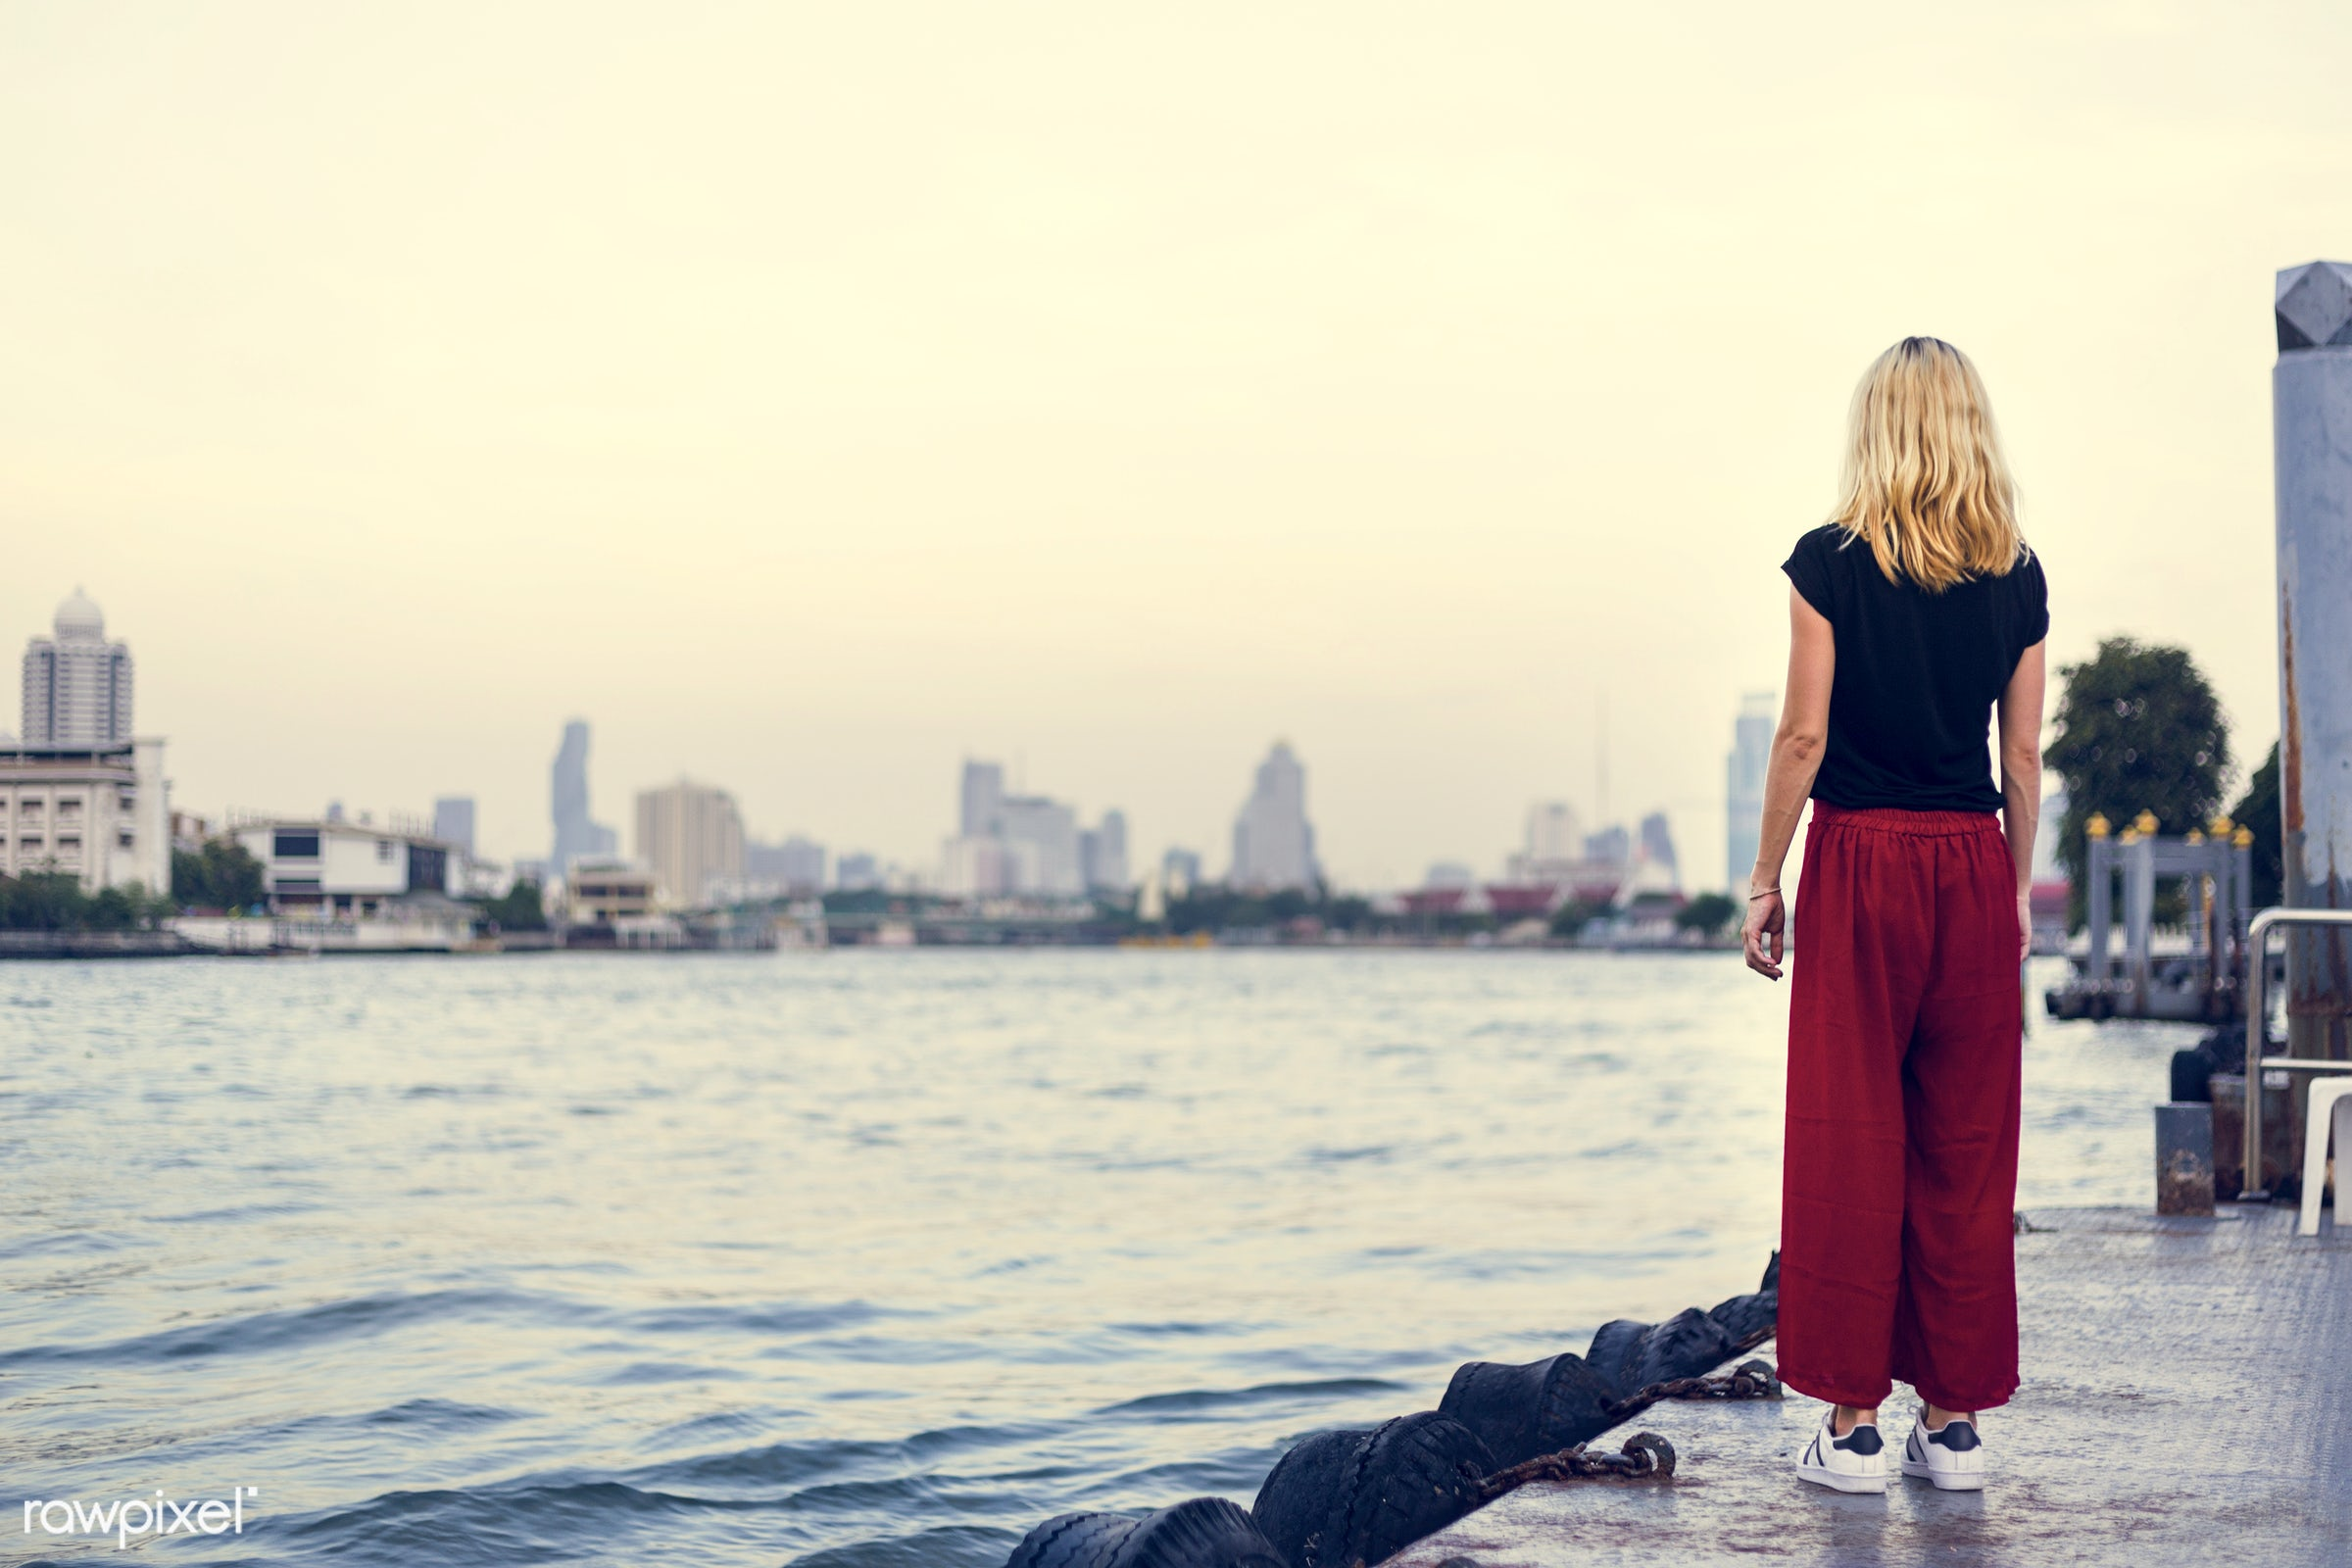 alone, back, blonde, caucasian, chill, dock, explore, female, one, outdoors, people, person, relax, river, riverside, solo,...